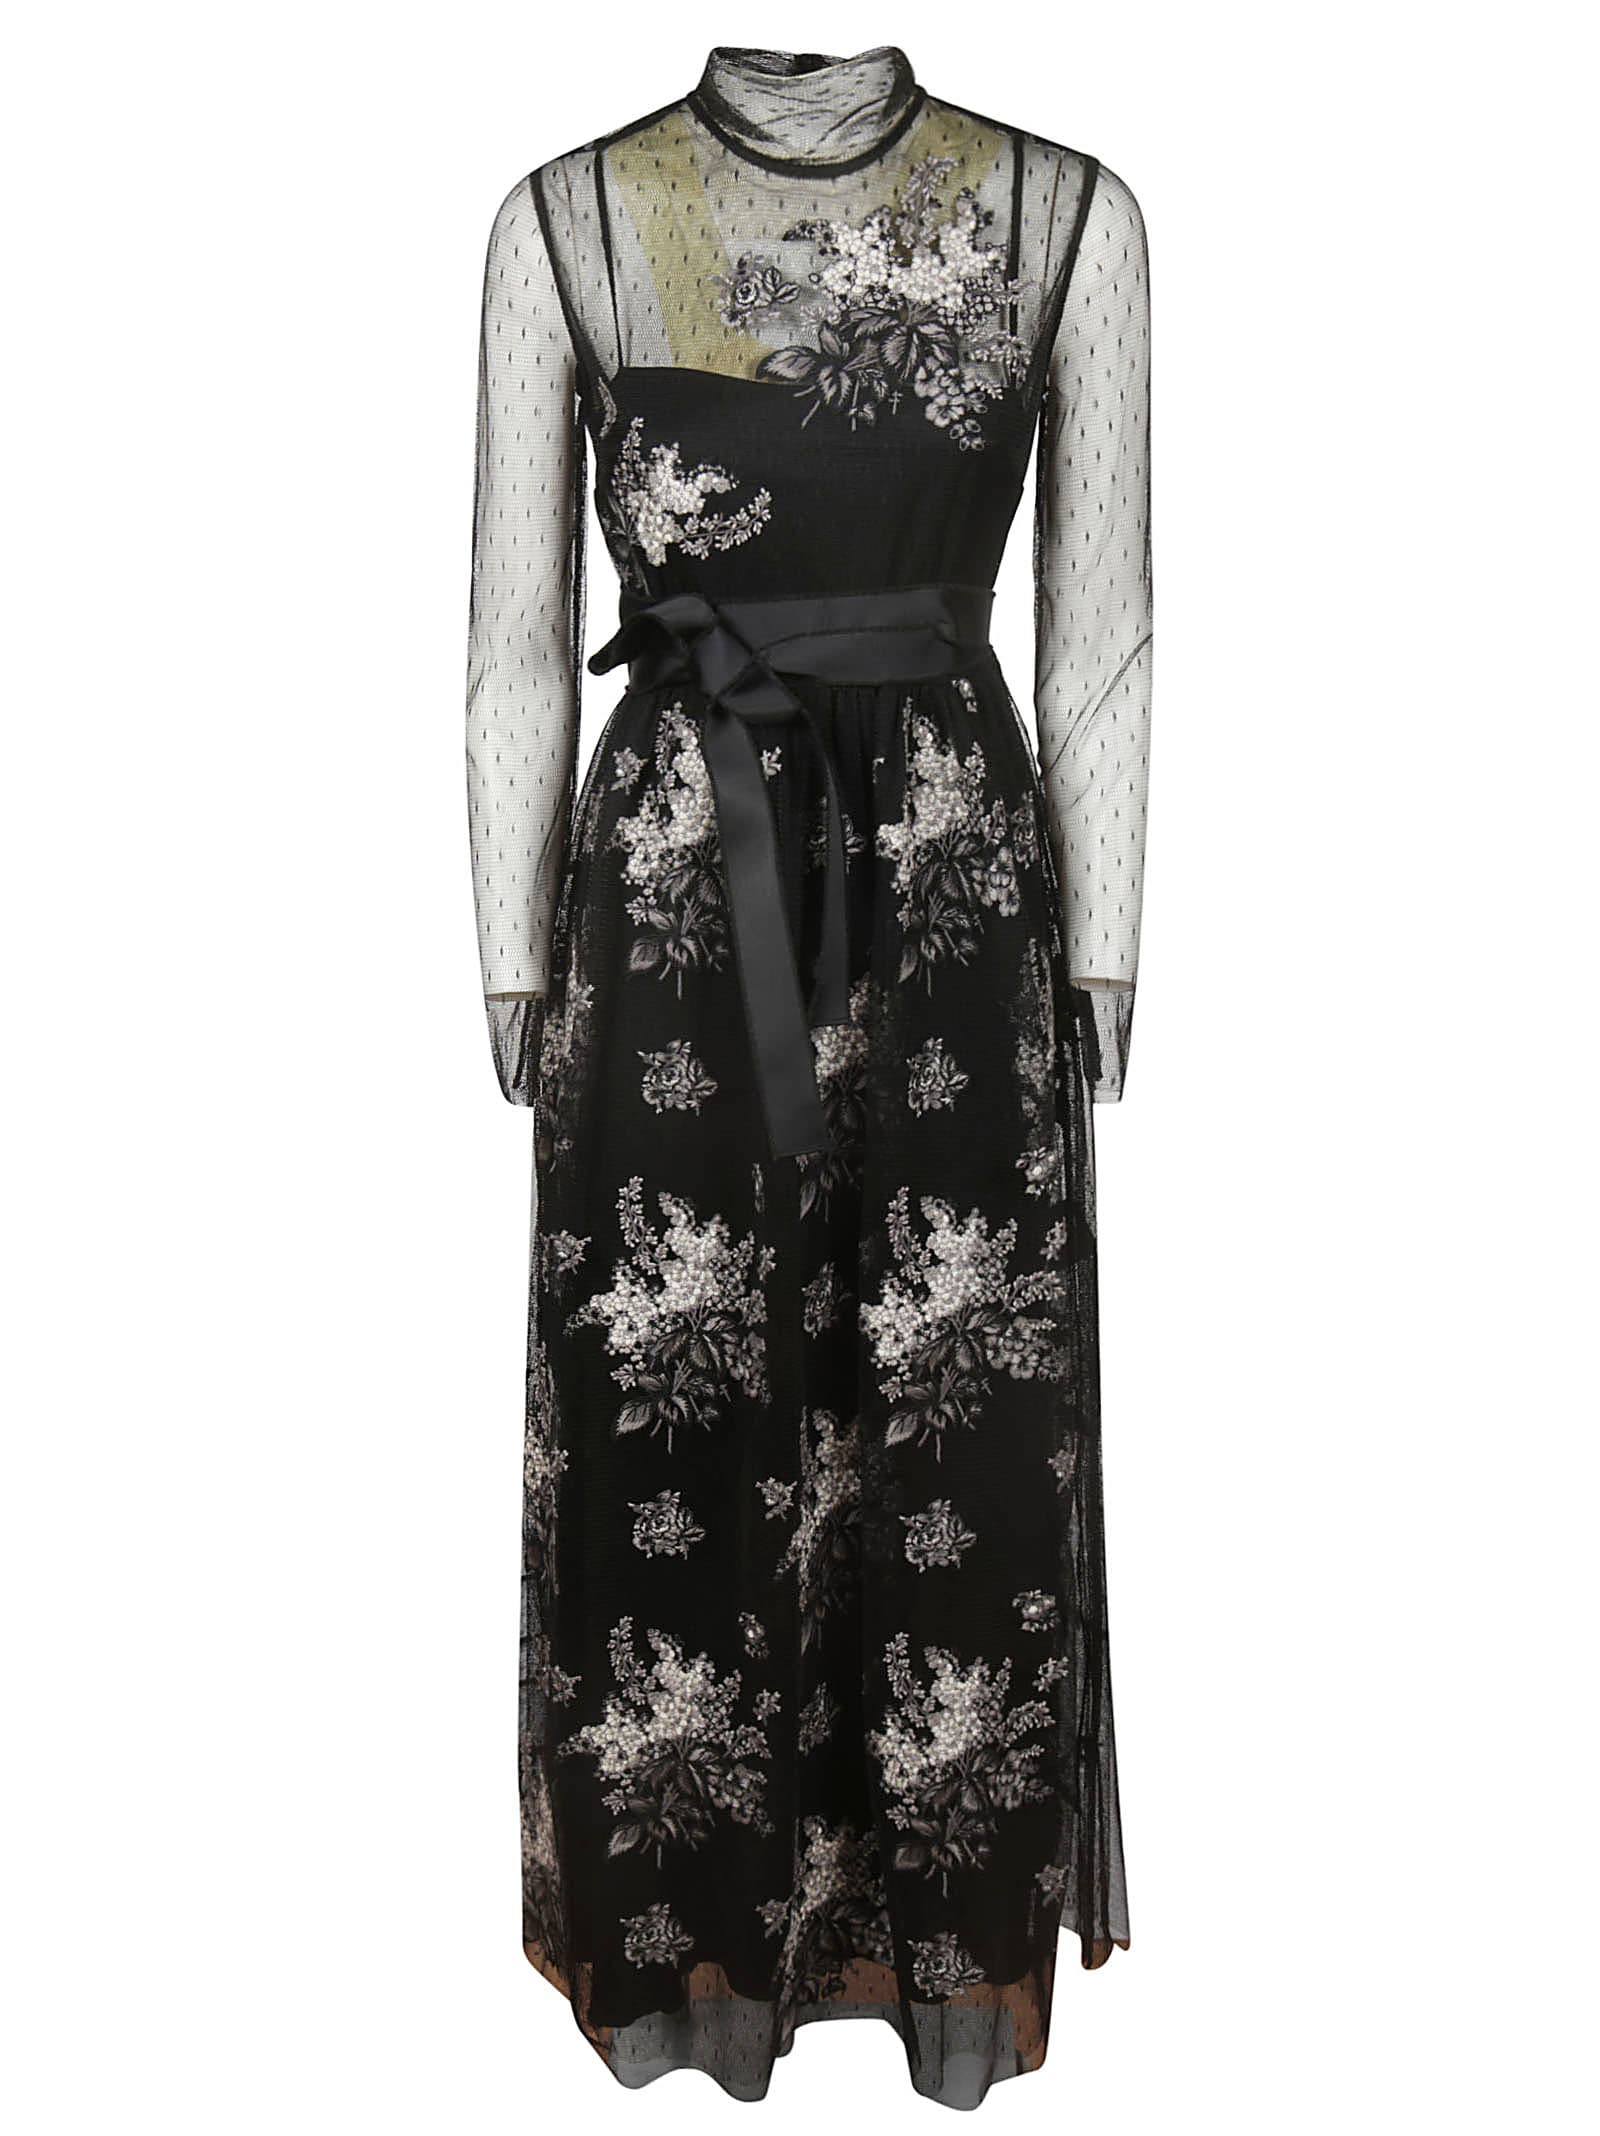 RED Valentino See-through Detail Floral Long Dress